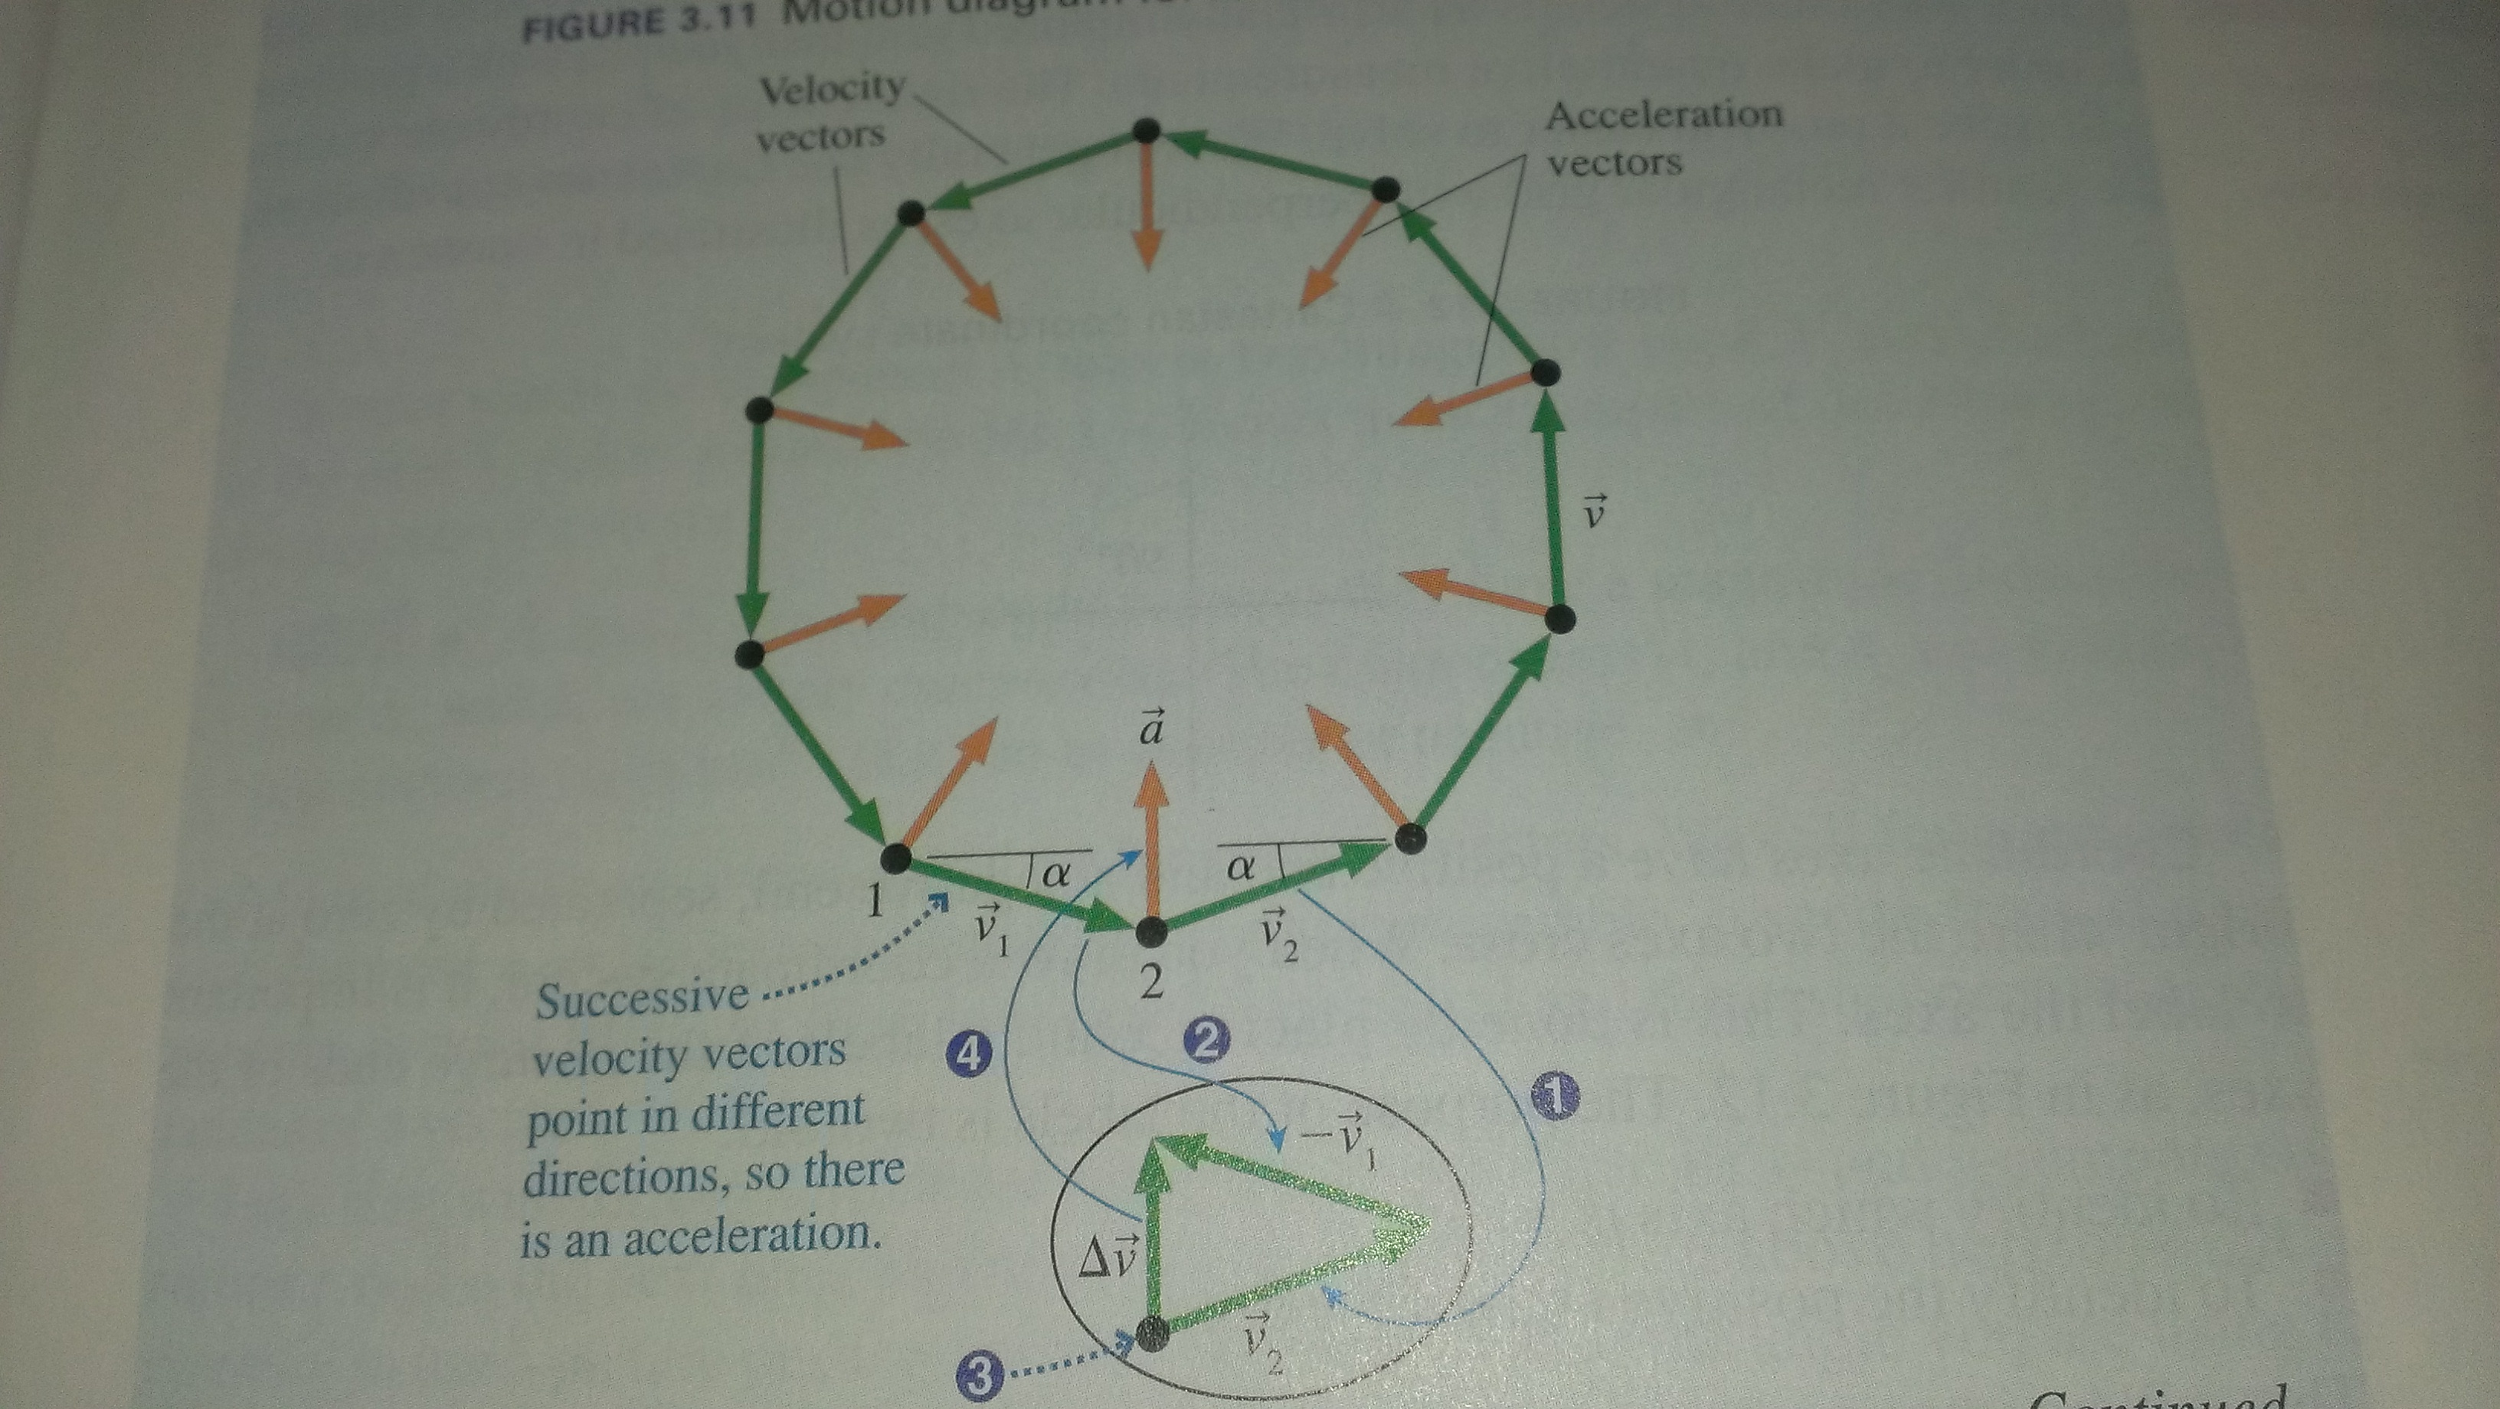 For the motion diagram of a Ferris wheel below, it